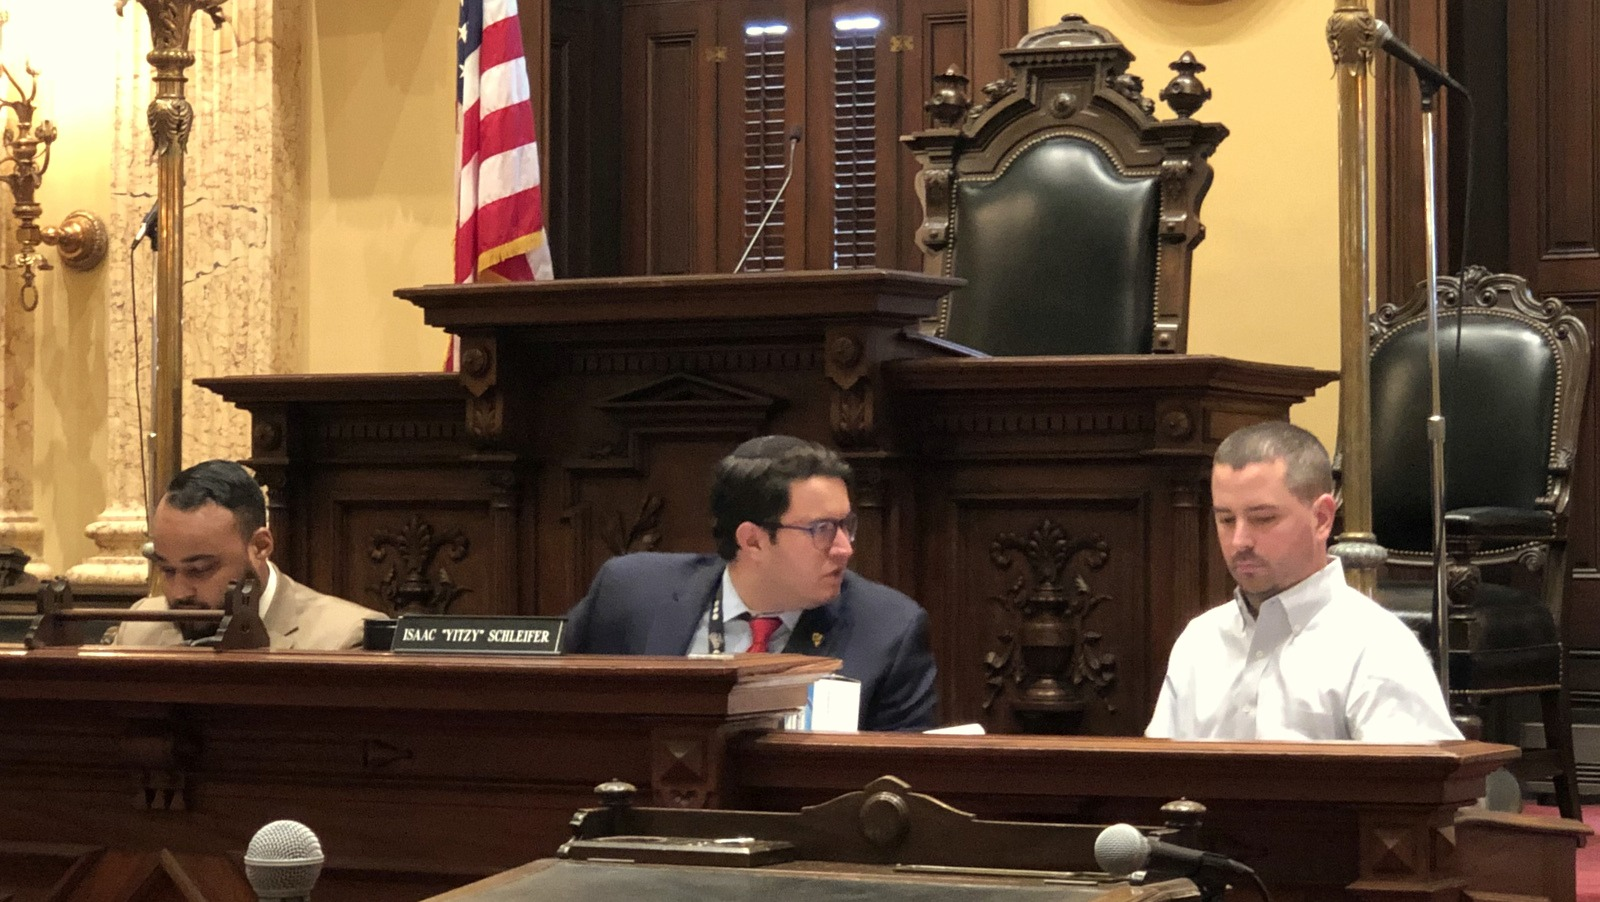 Councilmen Kris Burnett, Yitzy Schleifer and Eric Costello at yesterday's hearing on offering rebates to Baltimore residents installing home security cameras. (Ian Pound)